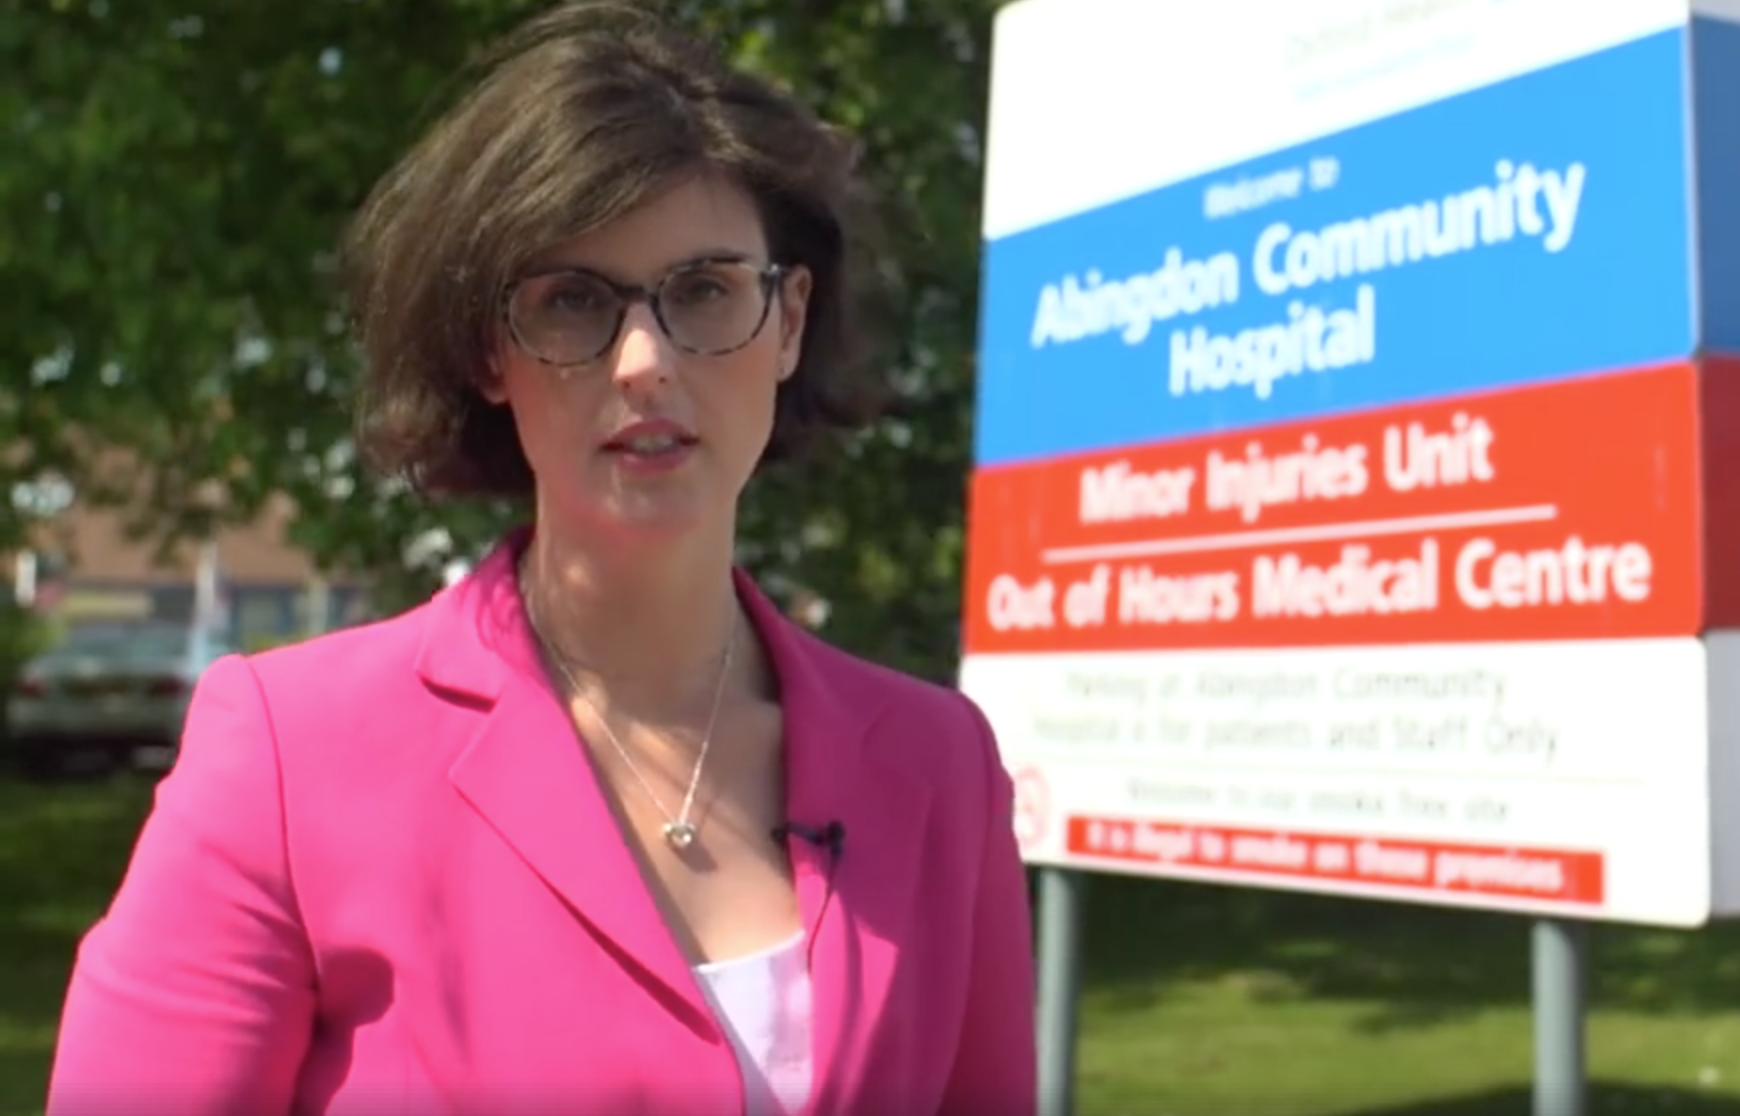 Layla_Moran_at_Abingdon_Hospital.png